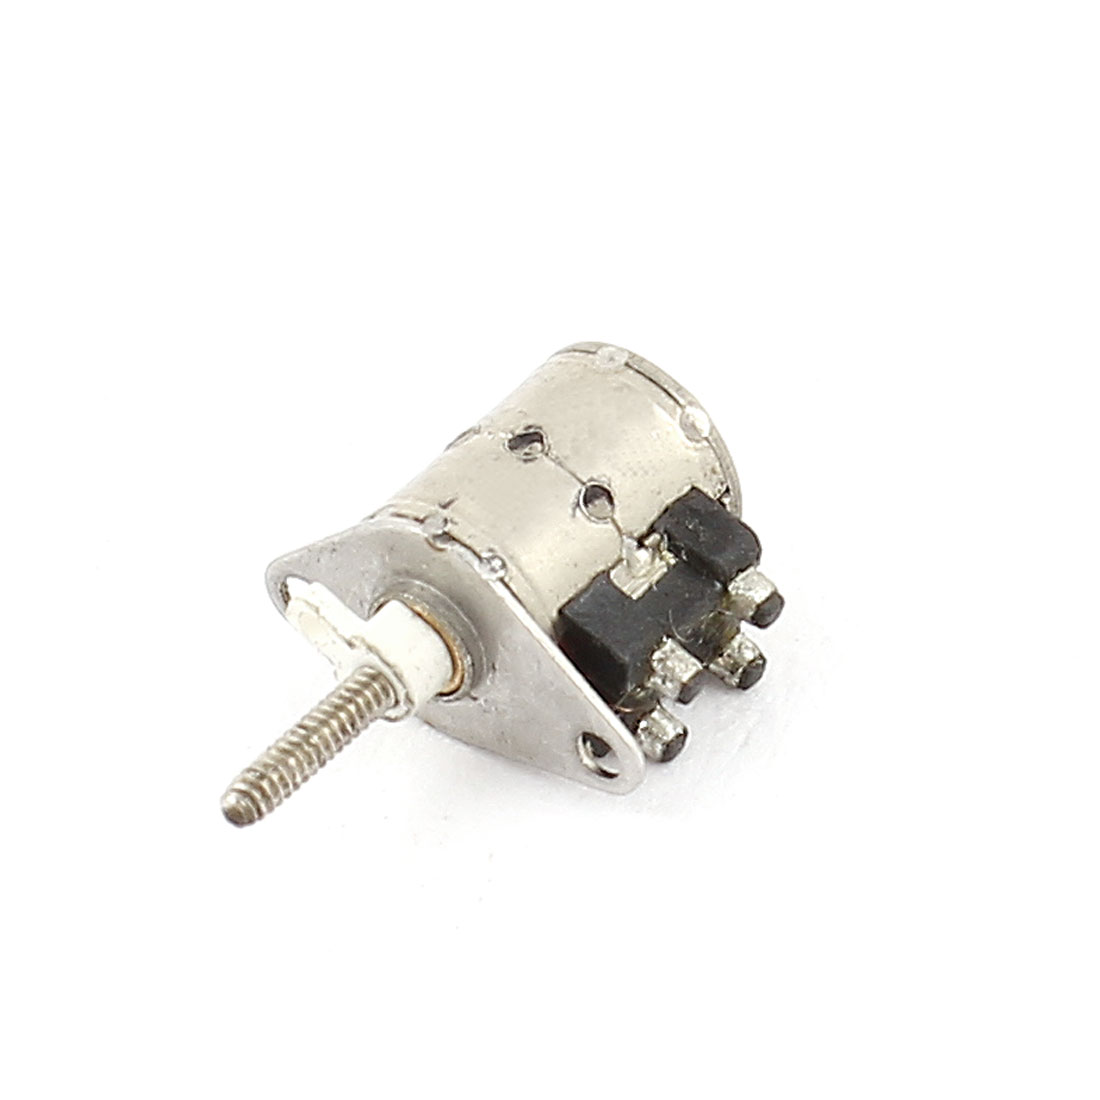 Screw Shaft Slide Table 2 Phase 4 Wire Micro-step Stepping Stepper Motor DC 3-6V